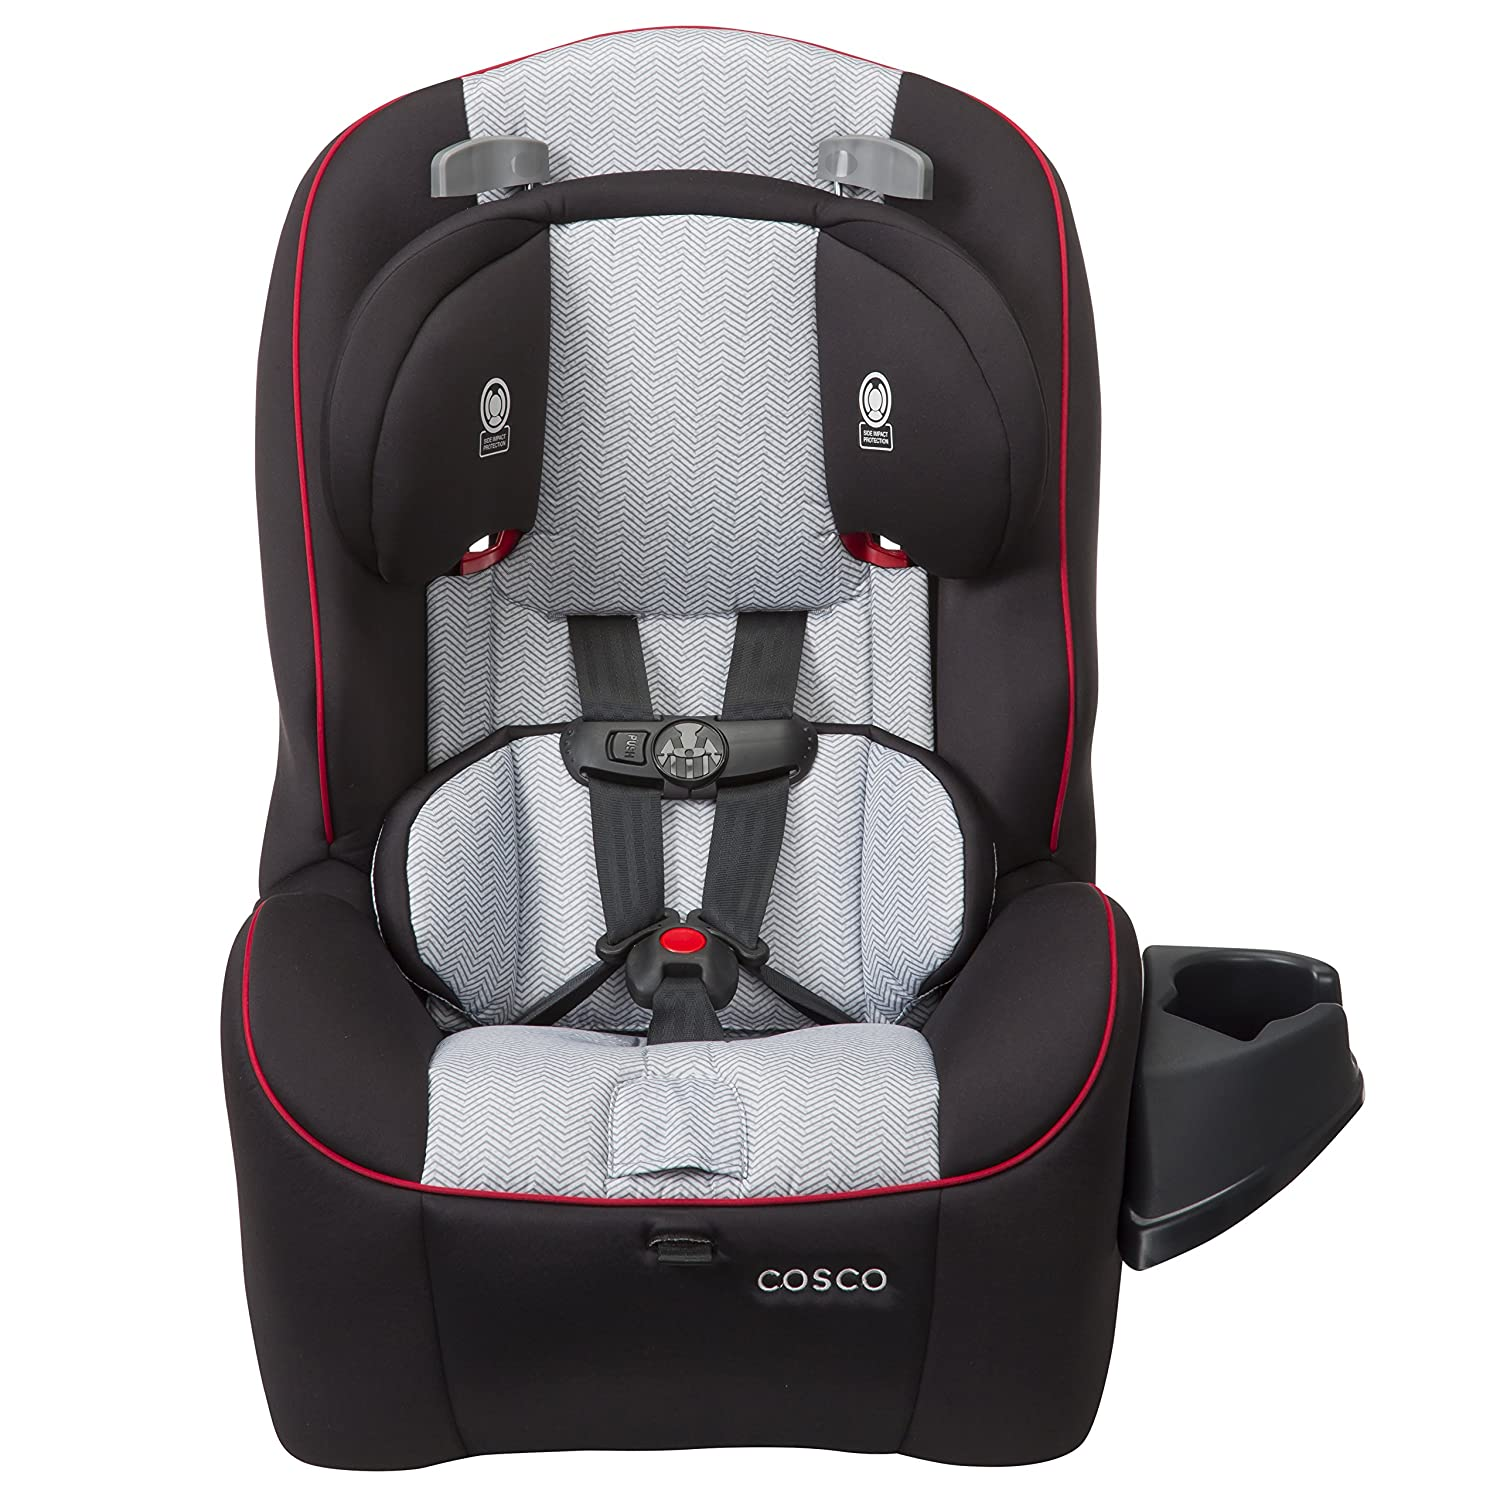 Cosco Easy Elite 3-in-1 Convertible Car Seat, Wallstreet Grey Dorel Juvenile Group